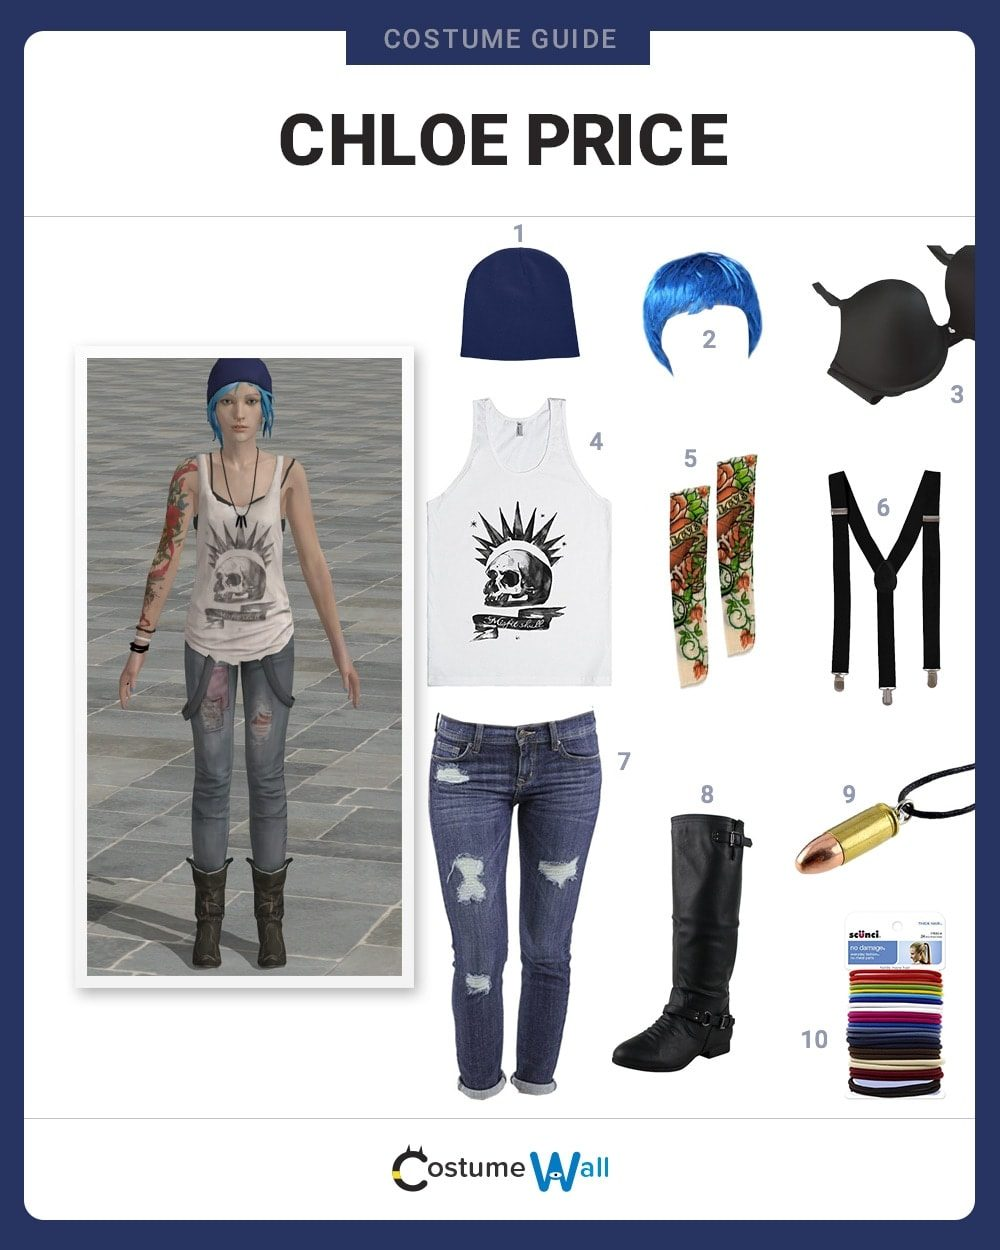 Chloe Price Costume Guide